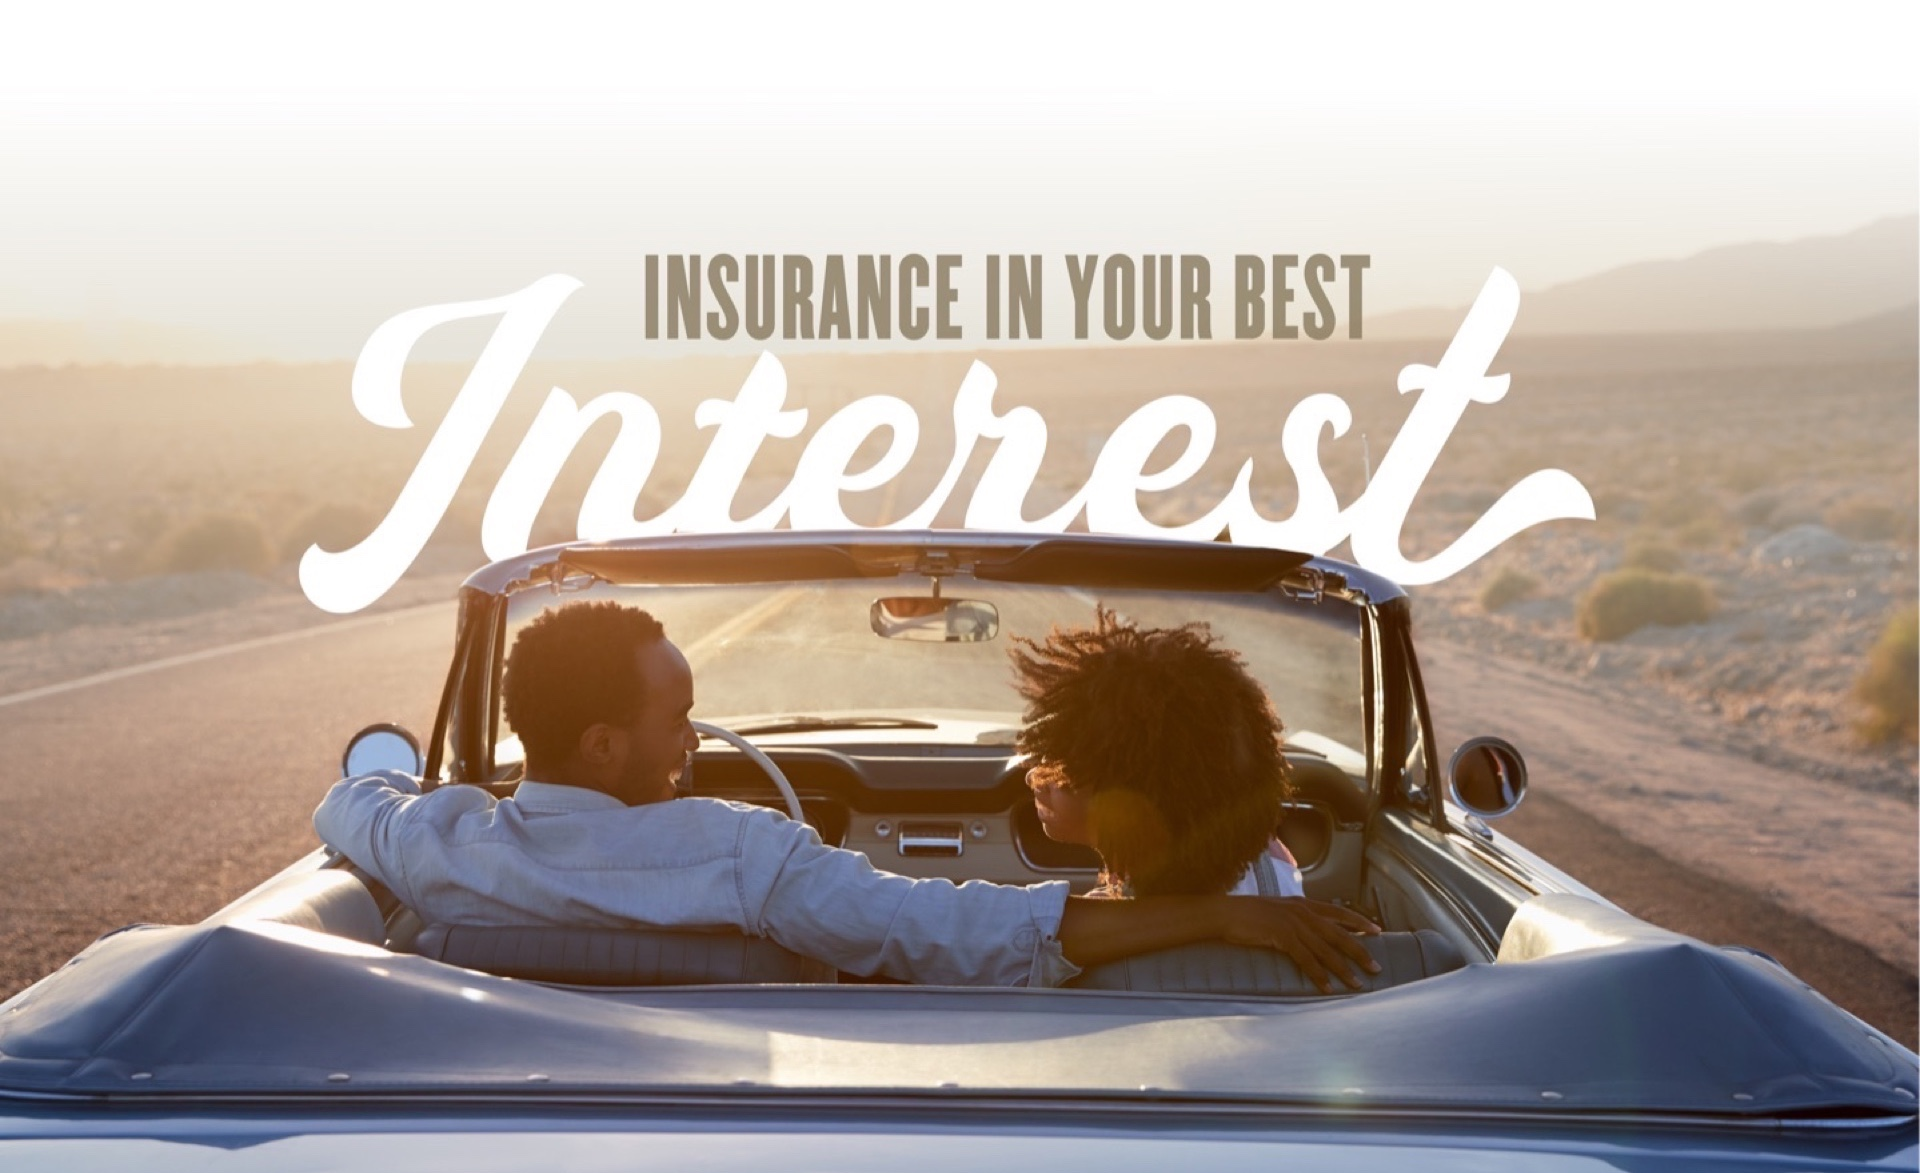 Insurance in Your Best Interest